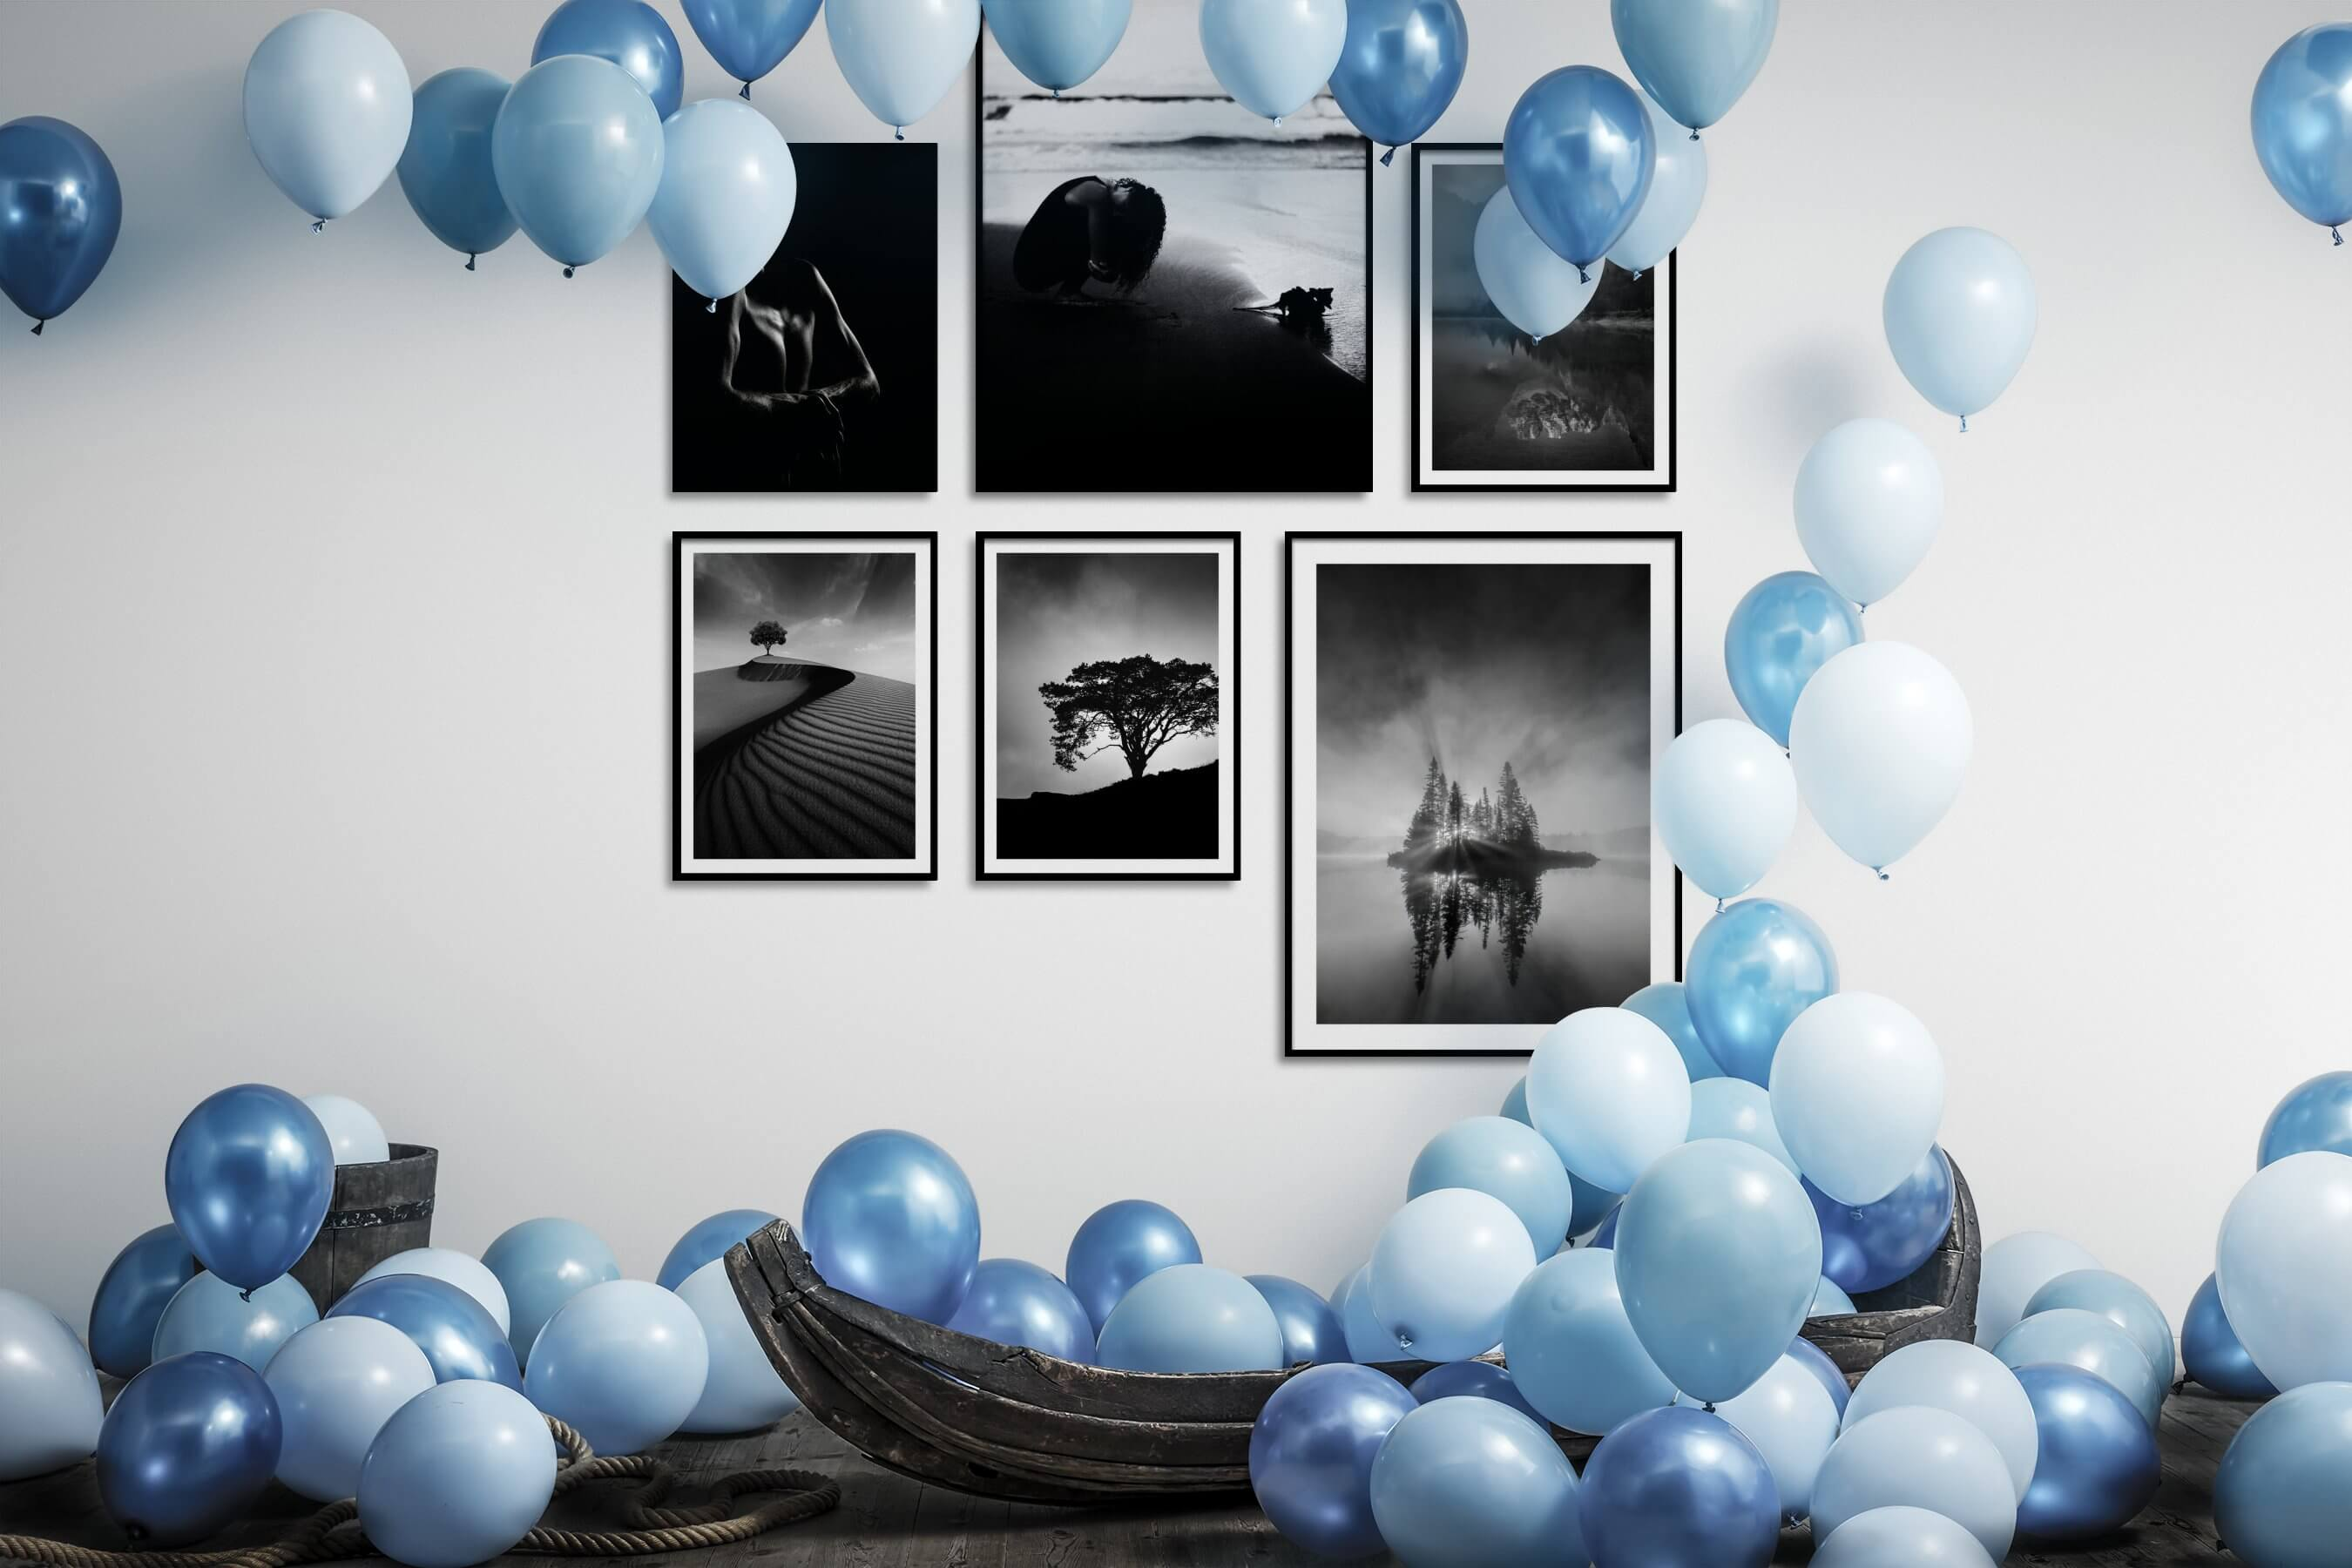 Gallery wall idea with six framed pictures arranged on a wall depicting Fashion & Beauty, Black & White, Dark Tones, For the Minimalist, Artsy, Beach & Water, Nature, and Mindfulness